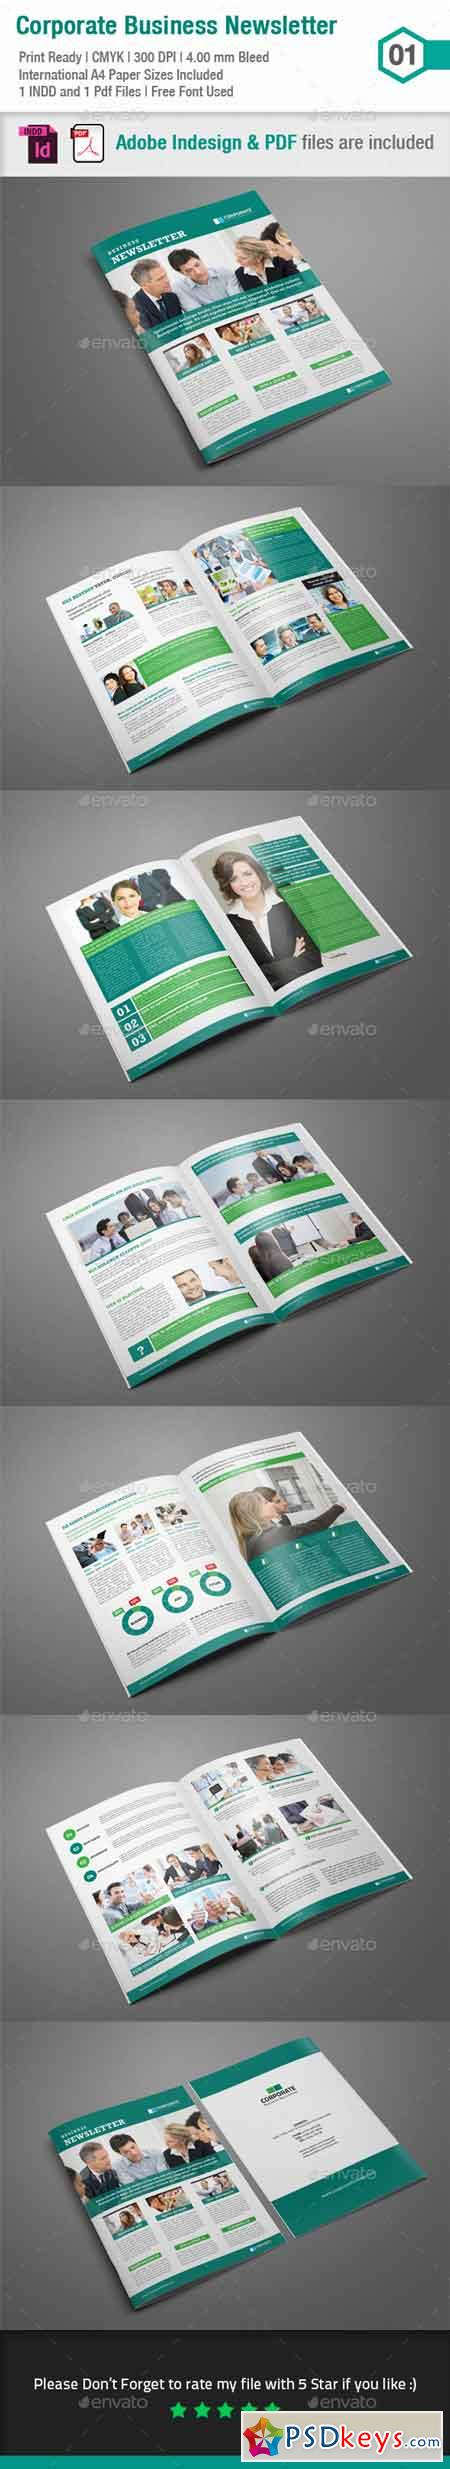 Business Newsletter Template_Indesign Layout_V1 8924552